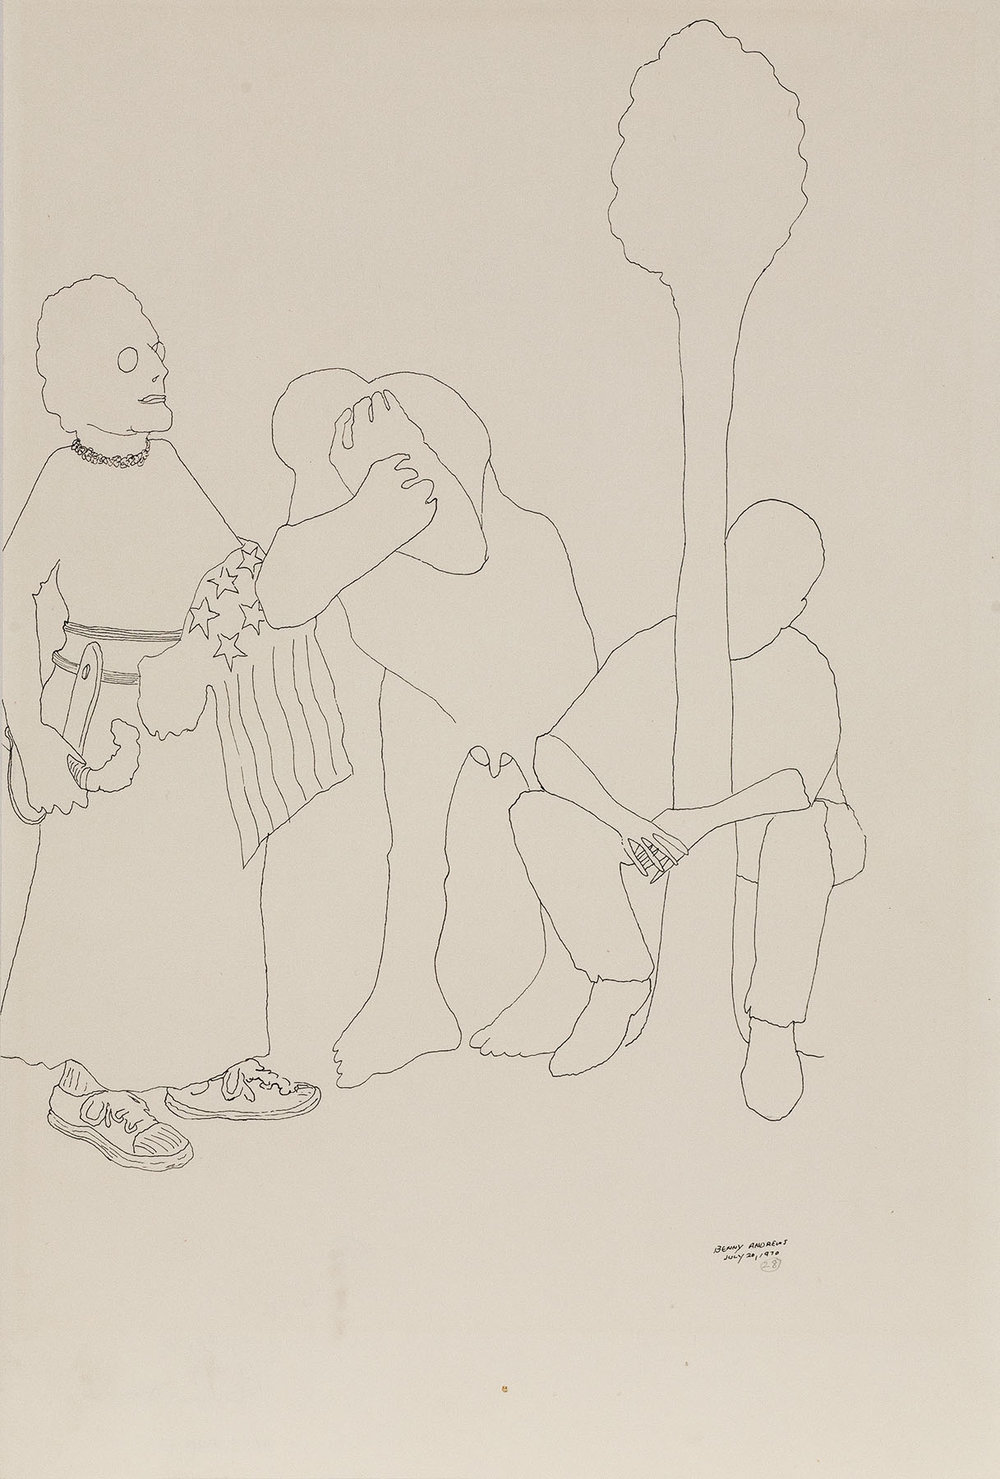 Trio (Study for Symbols),  1970 pen and ink on paper 18 x 12.25""